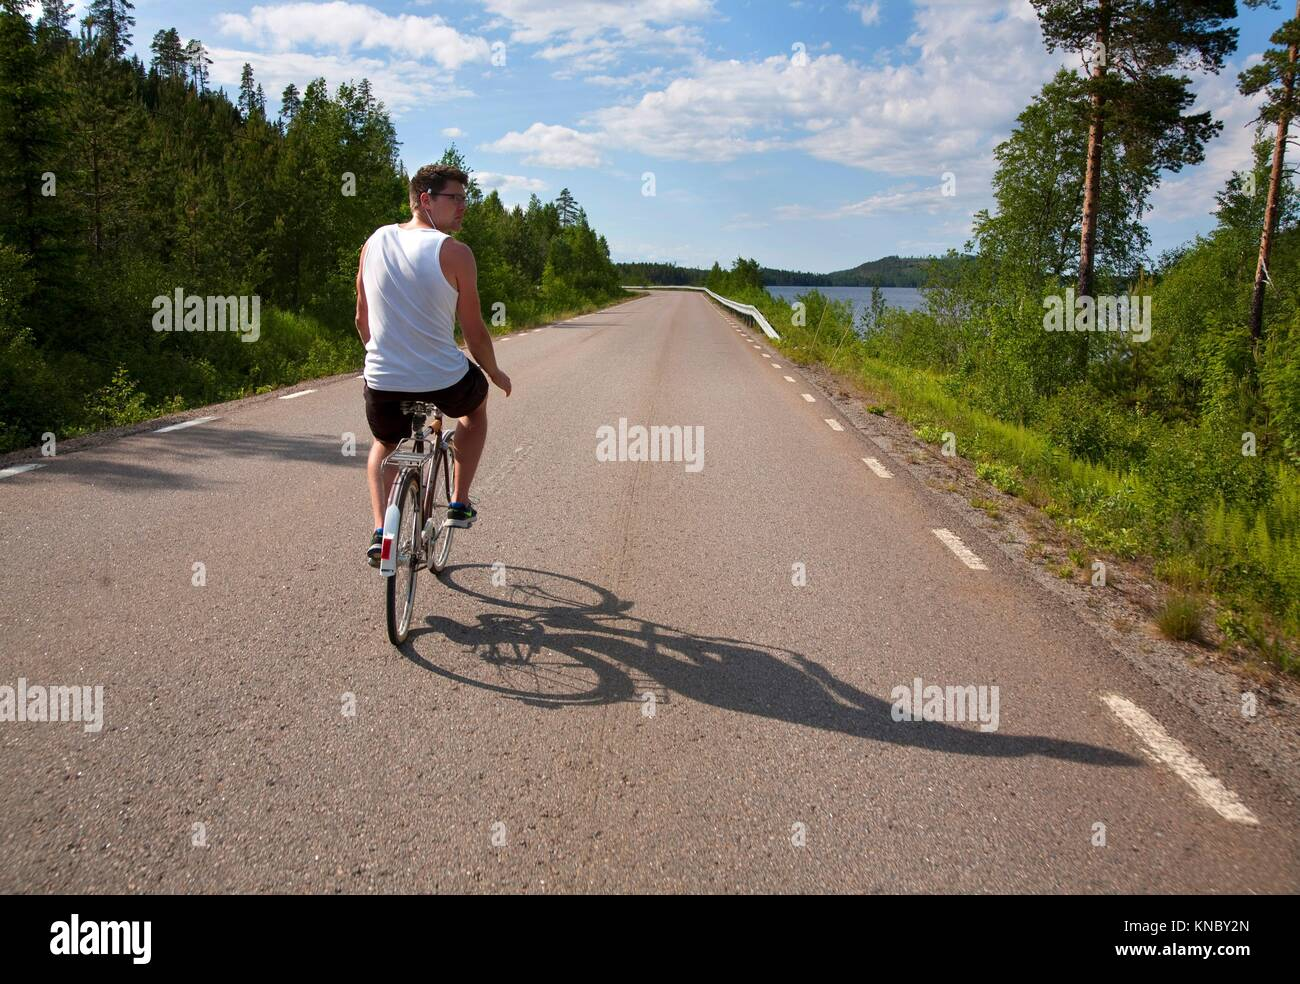 Man riding bicycle on the road, countryside of northern Sweden. - Stock Image